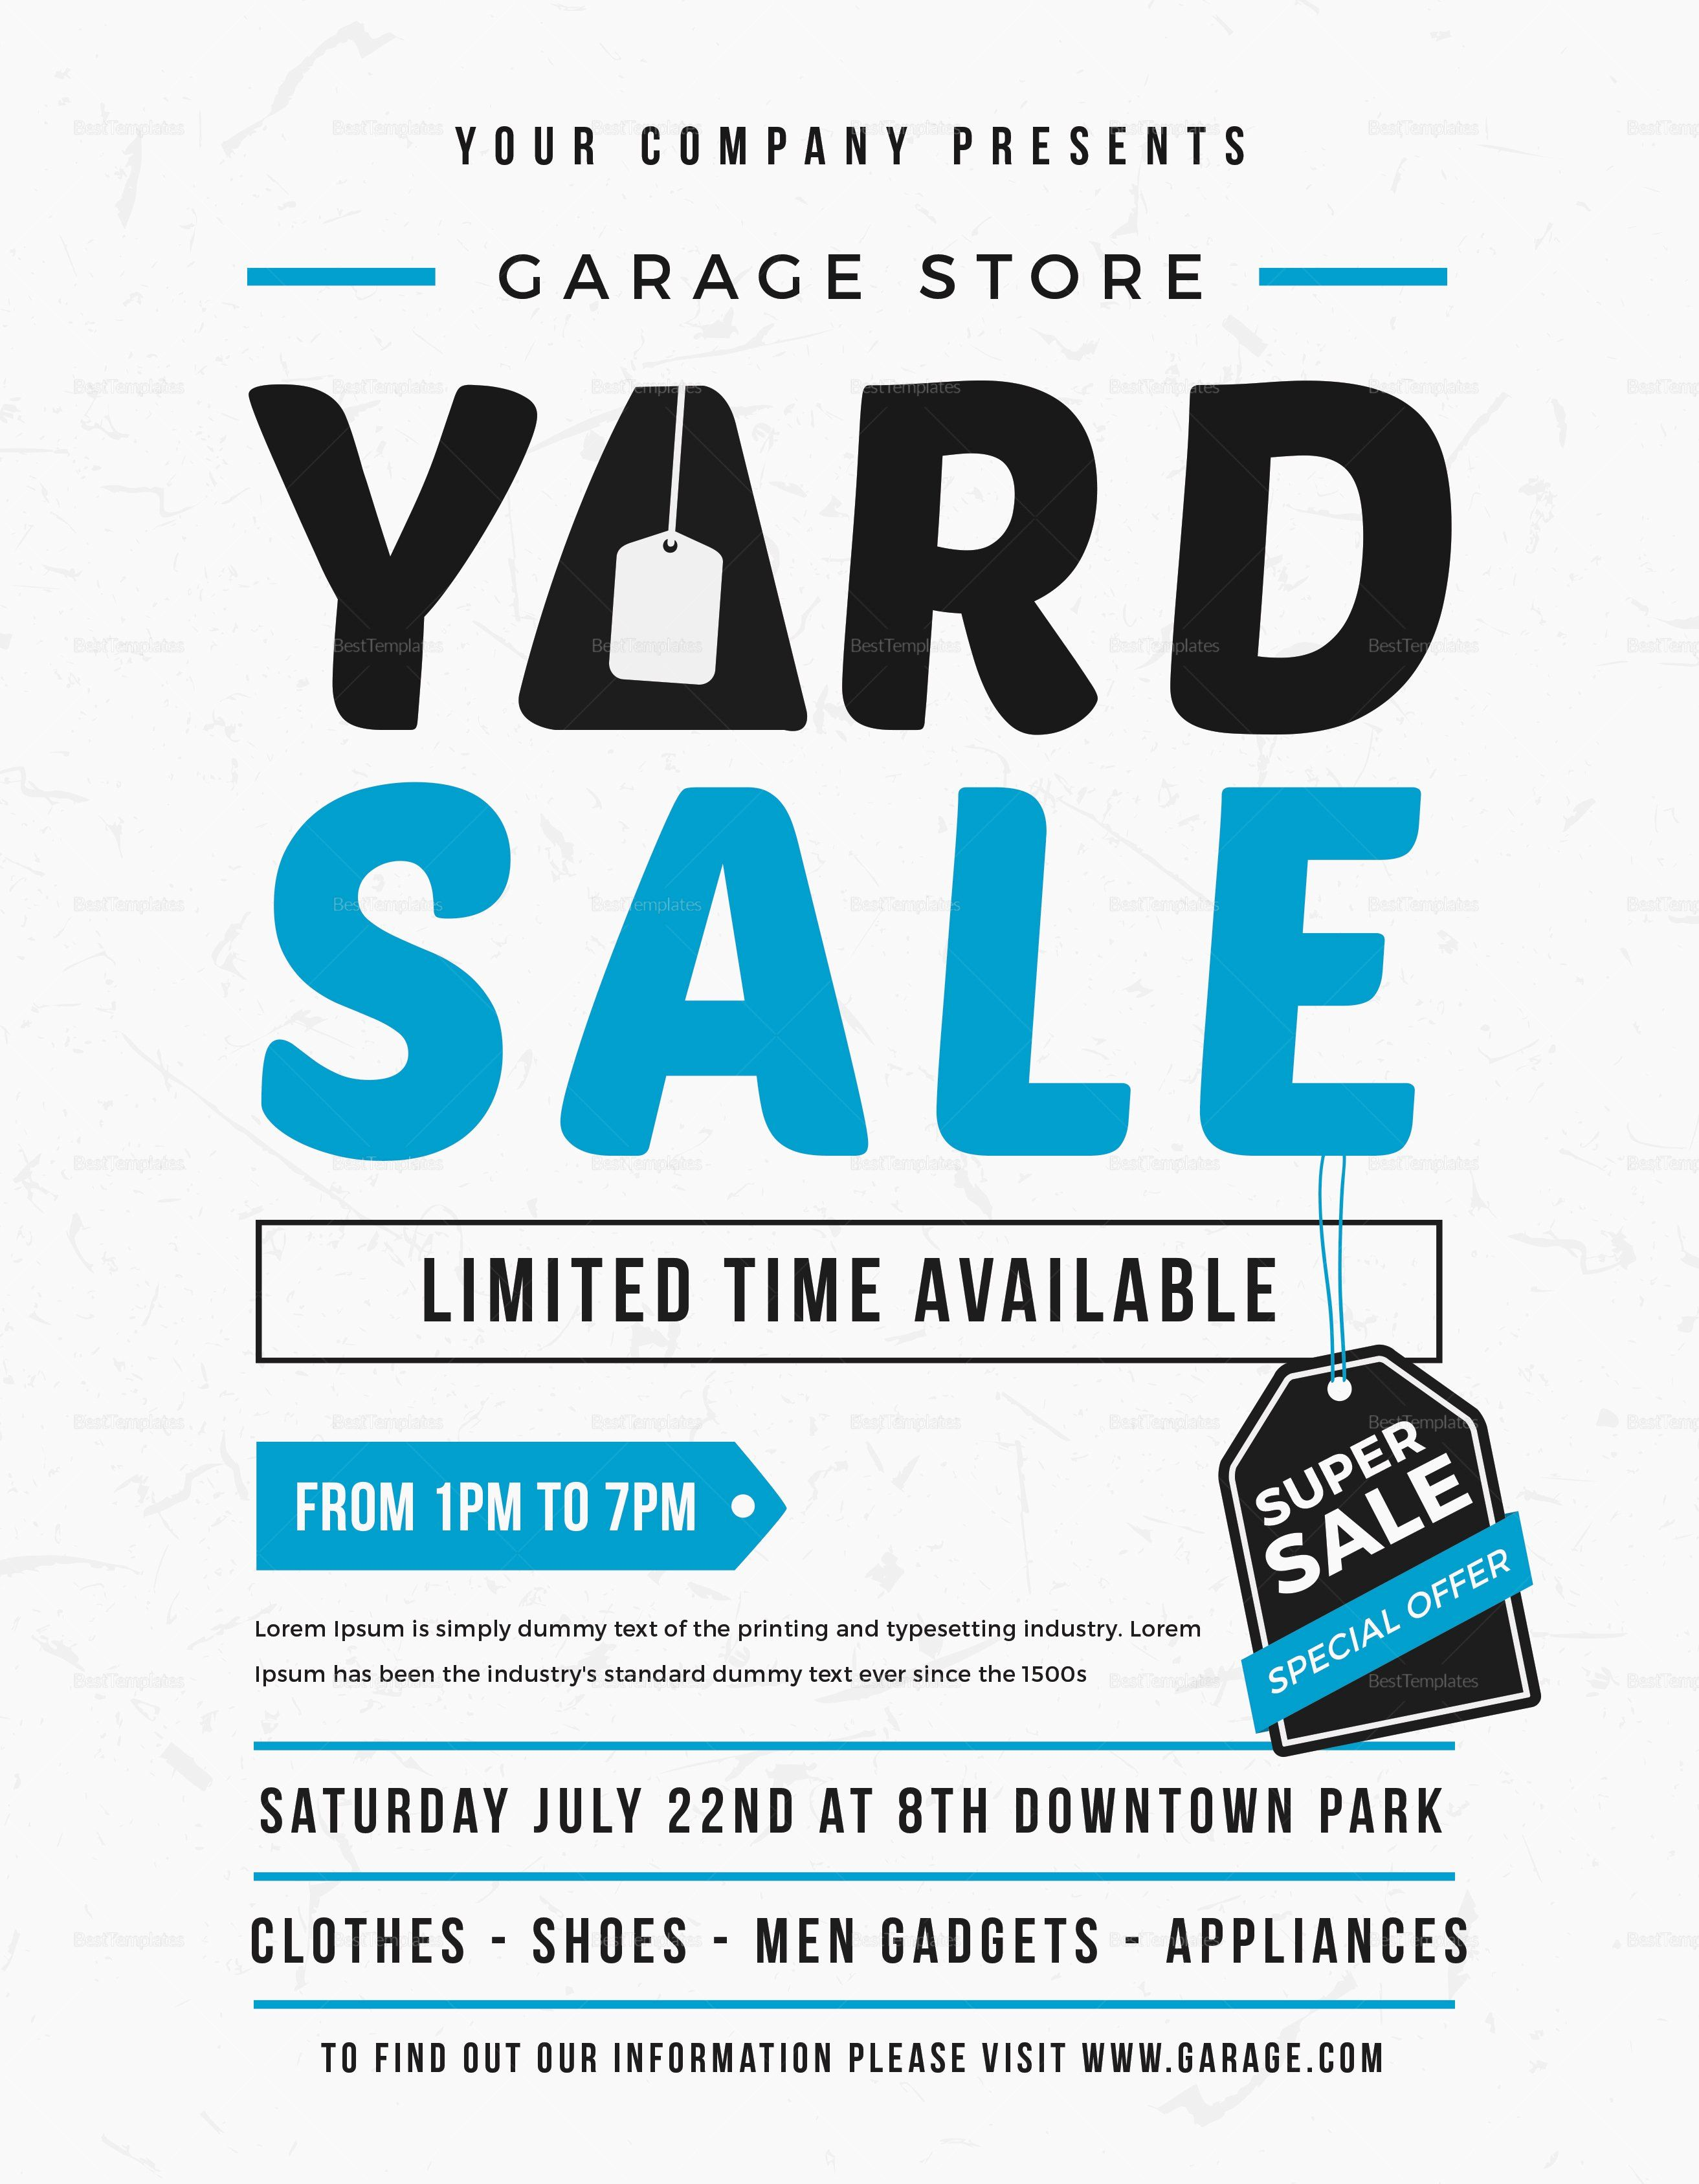 Garage Sale Flyer Template Free Lovely Unique Yard Sale Flyer Design Template In Word Psd Illustrator Publisher Sale Flyer Flyer Template Flyer